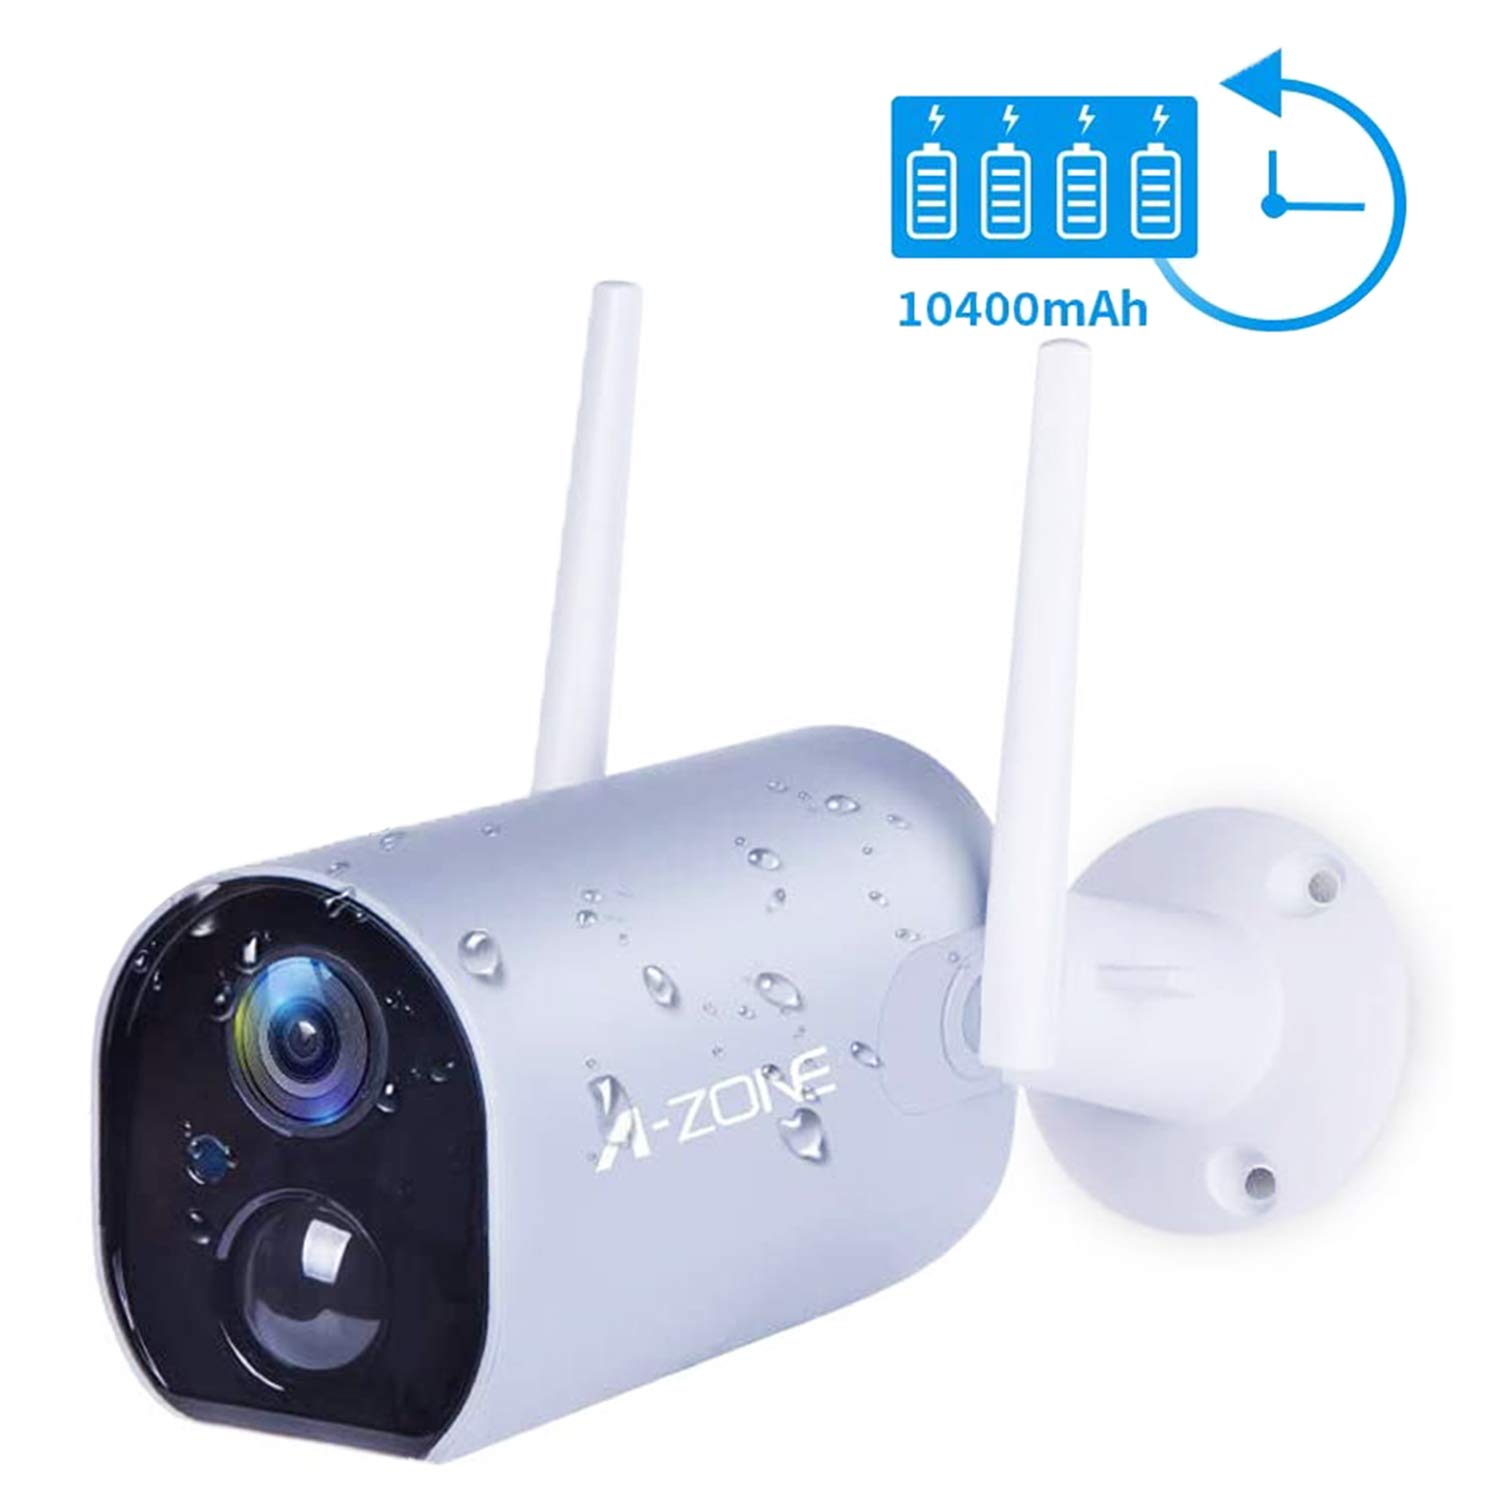 Battery Powered Outdoor Security Camera, Wireless Home Security Camera WiFi Camera Surveillance Camera 10400mAh Rechargeable Solar Power 1080P Night Vision Waterproof PIR Motion Detection 2-Way Audio